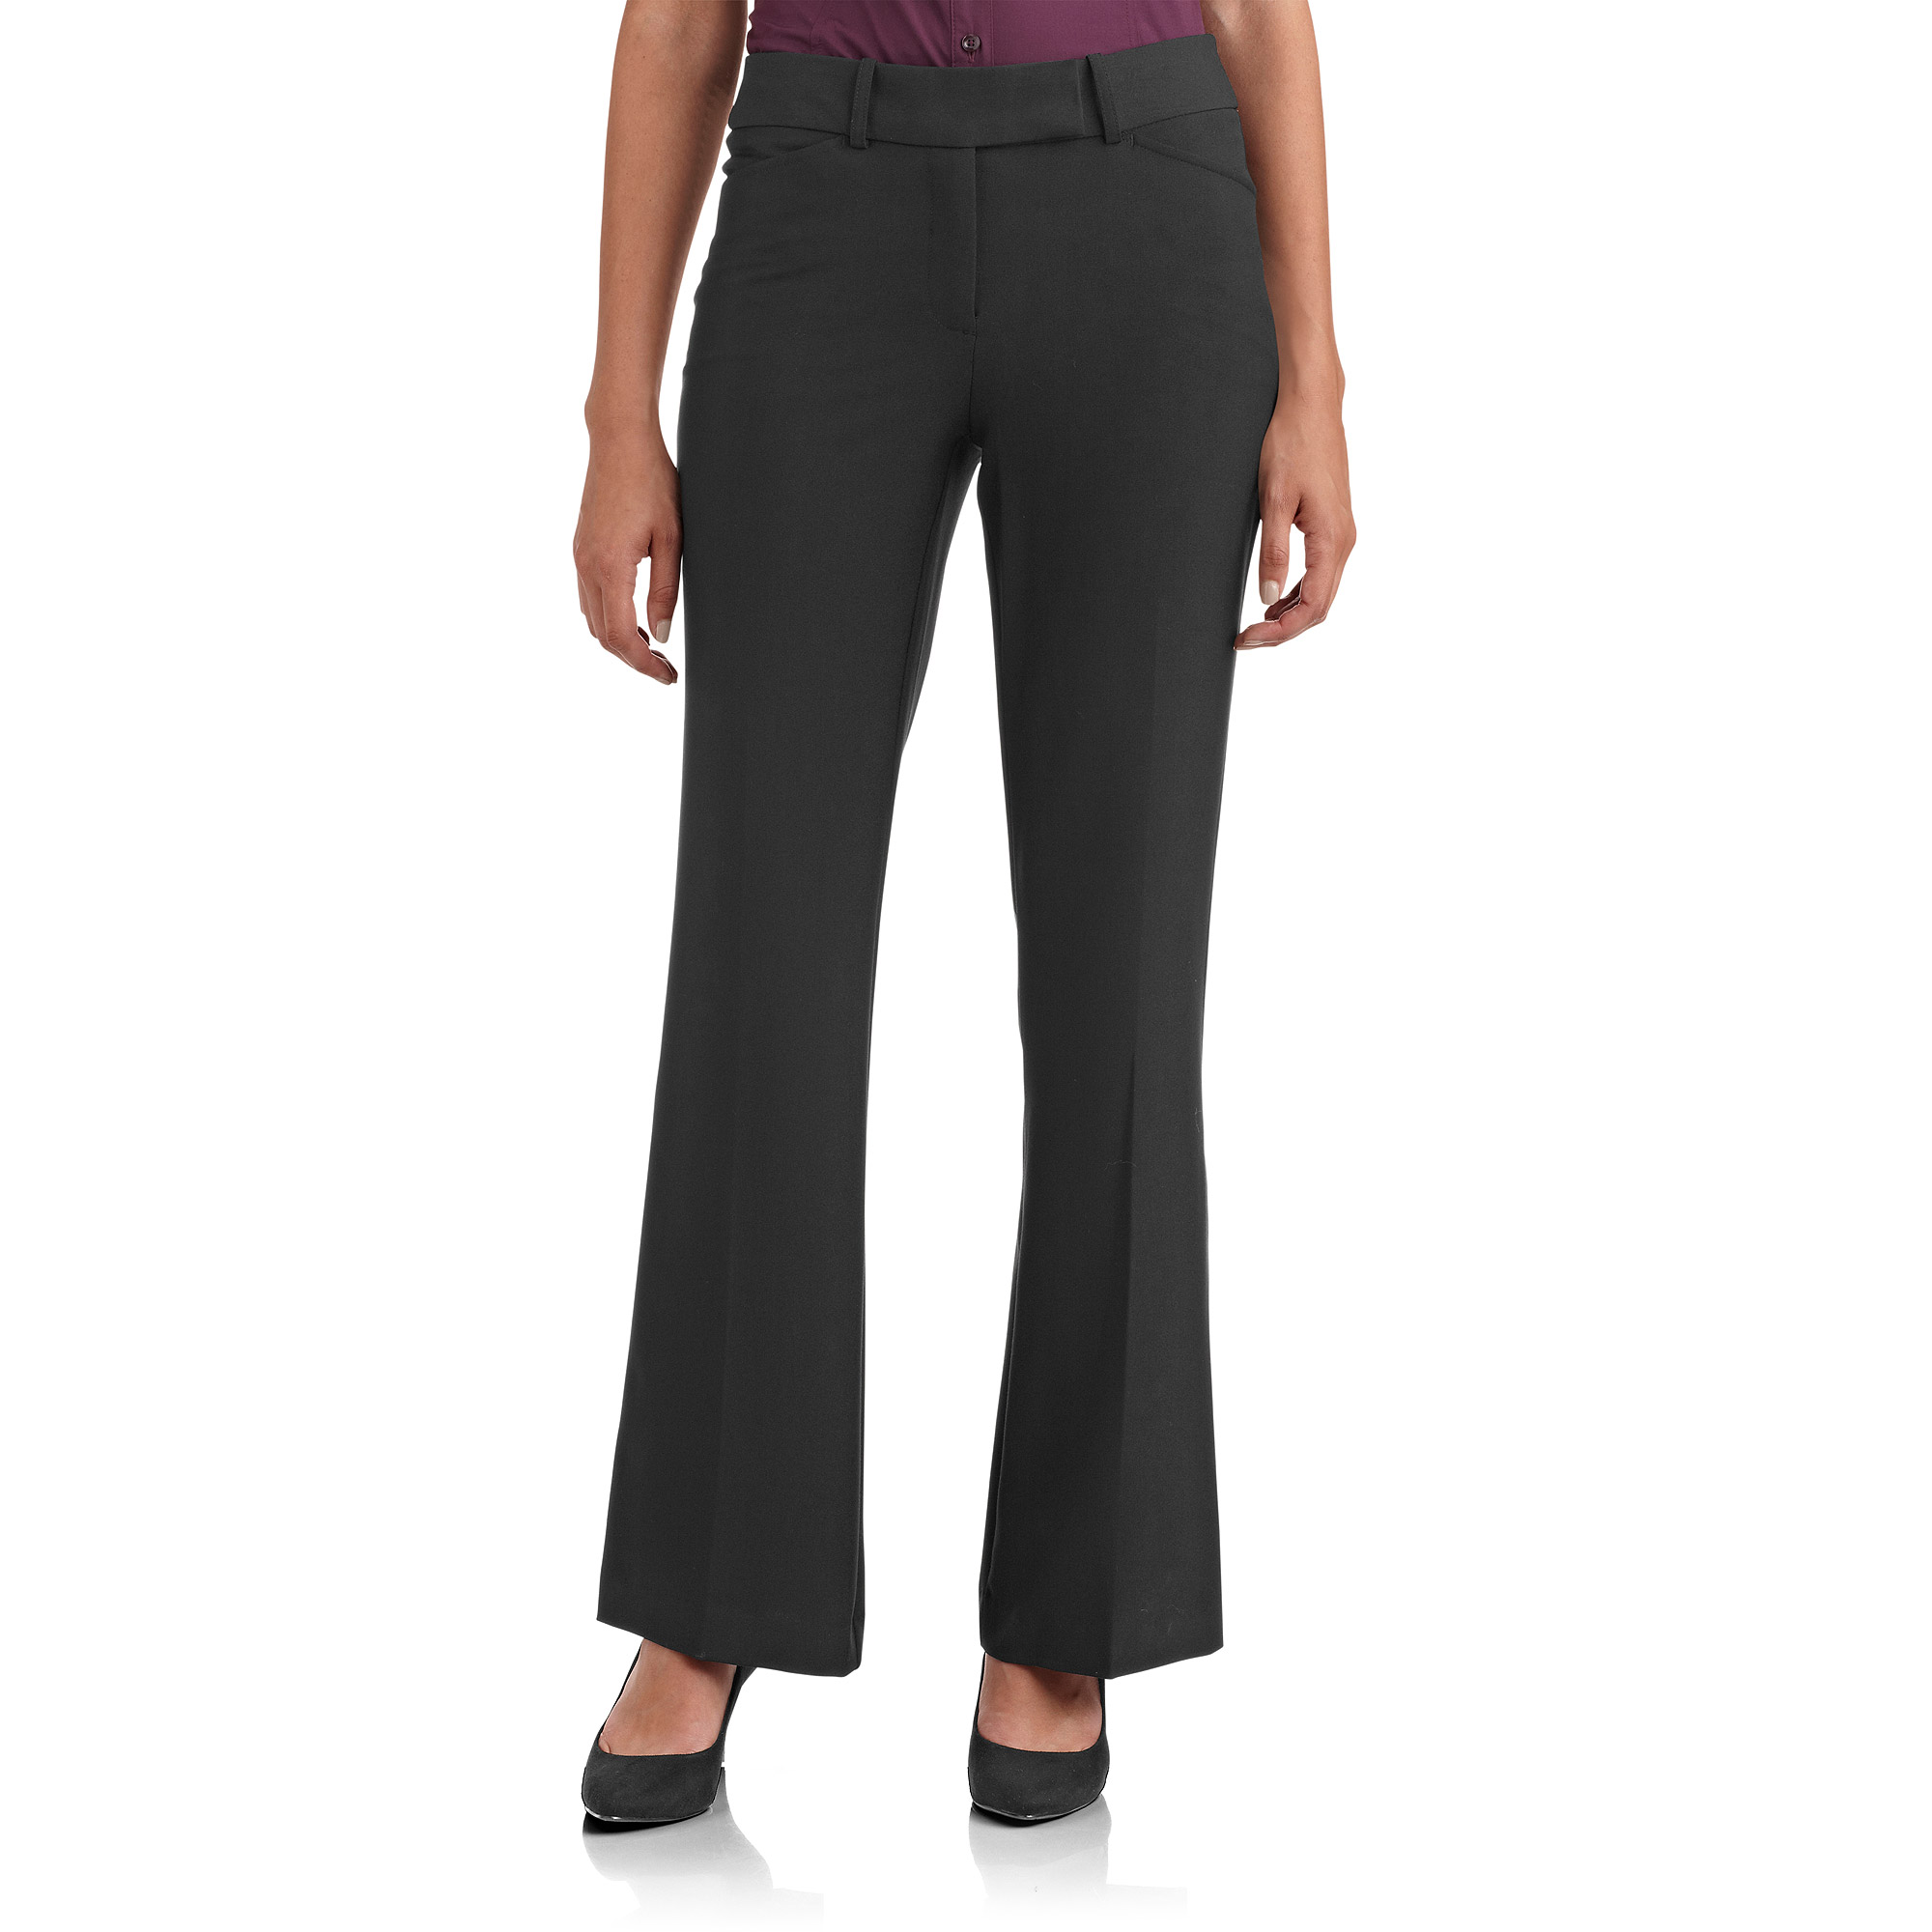 Popular Danskin Now Womens Comfort Fit Pants With Drawstring Available In